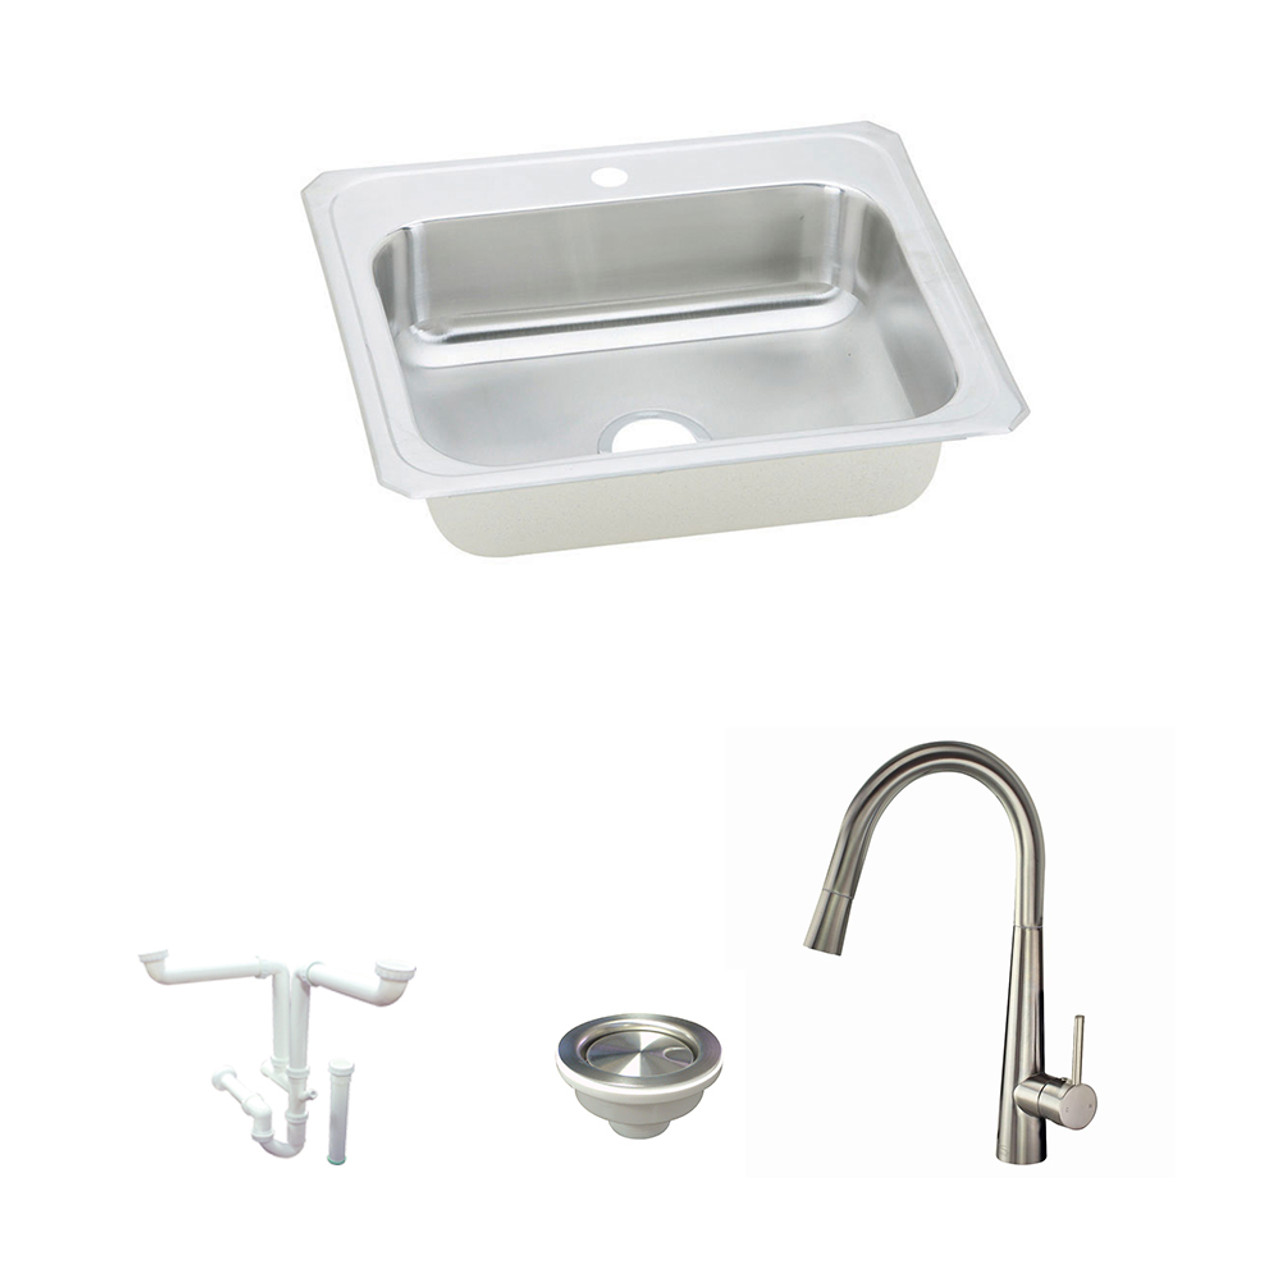 Elkay KF-CR31221 Celebrity Stainless Steel 31-In Drop-In Kitchen Sink Kit  With Kitchen Sink, Faucet, Strainer, Drain Installation Kit